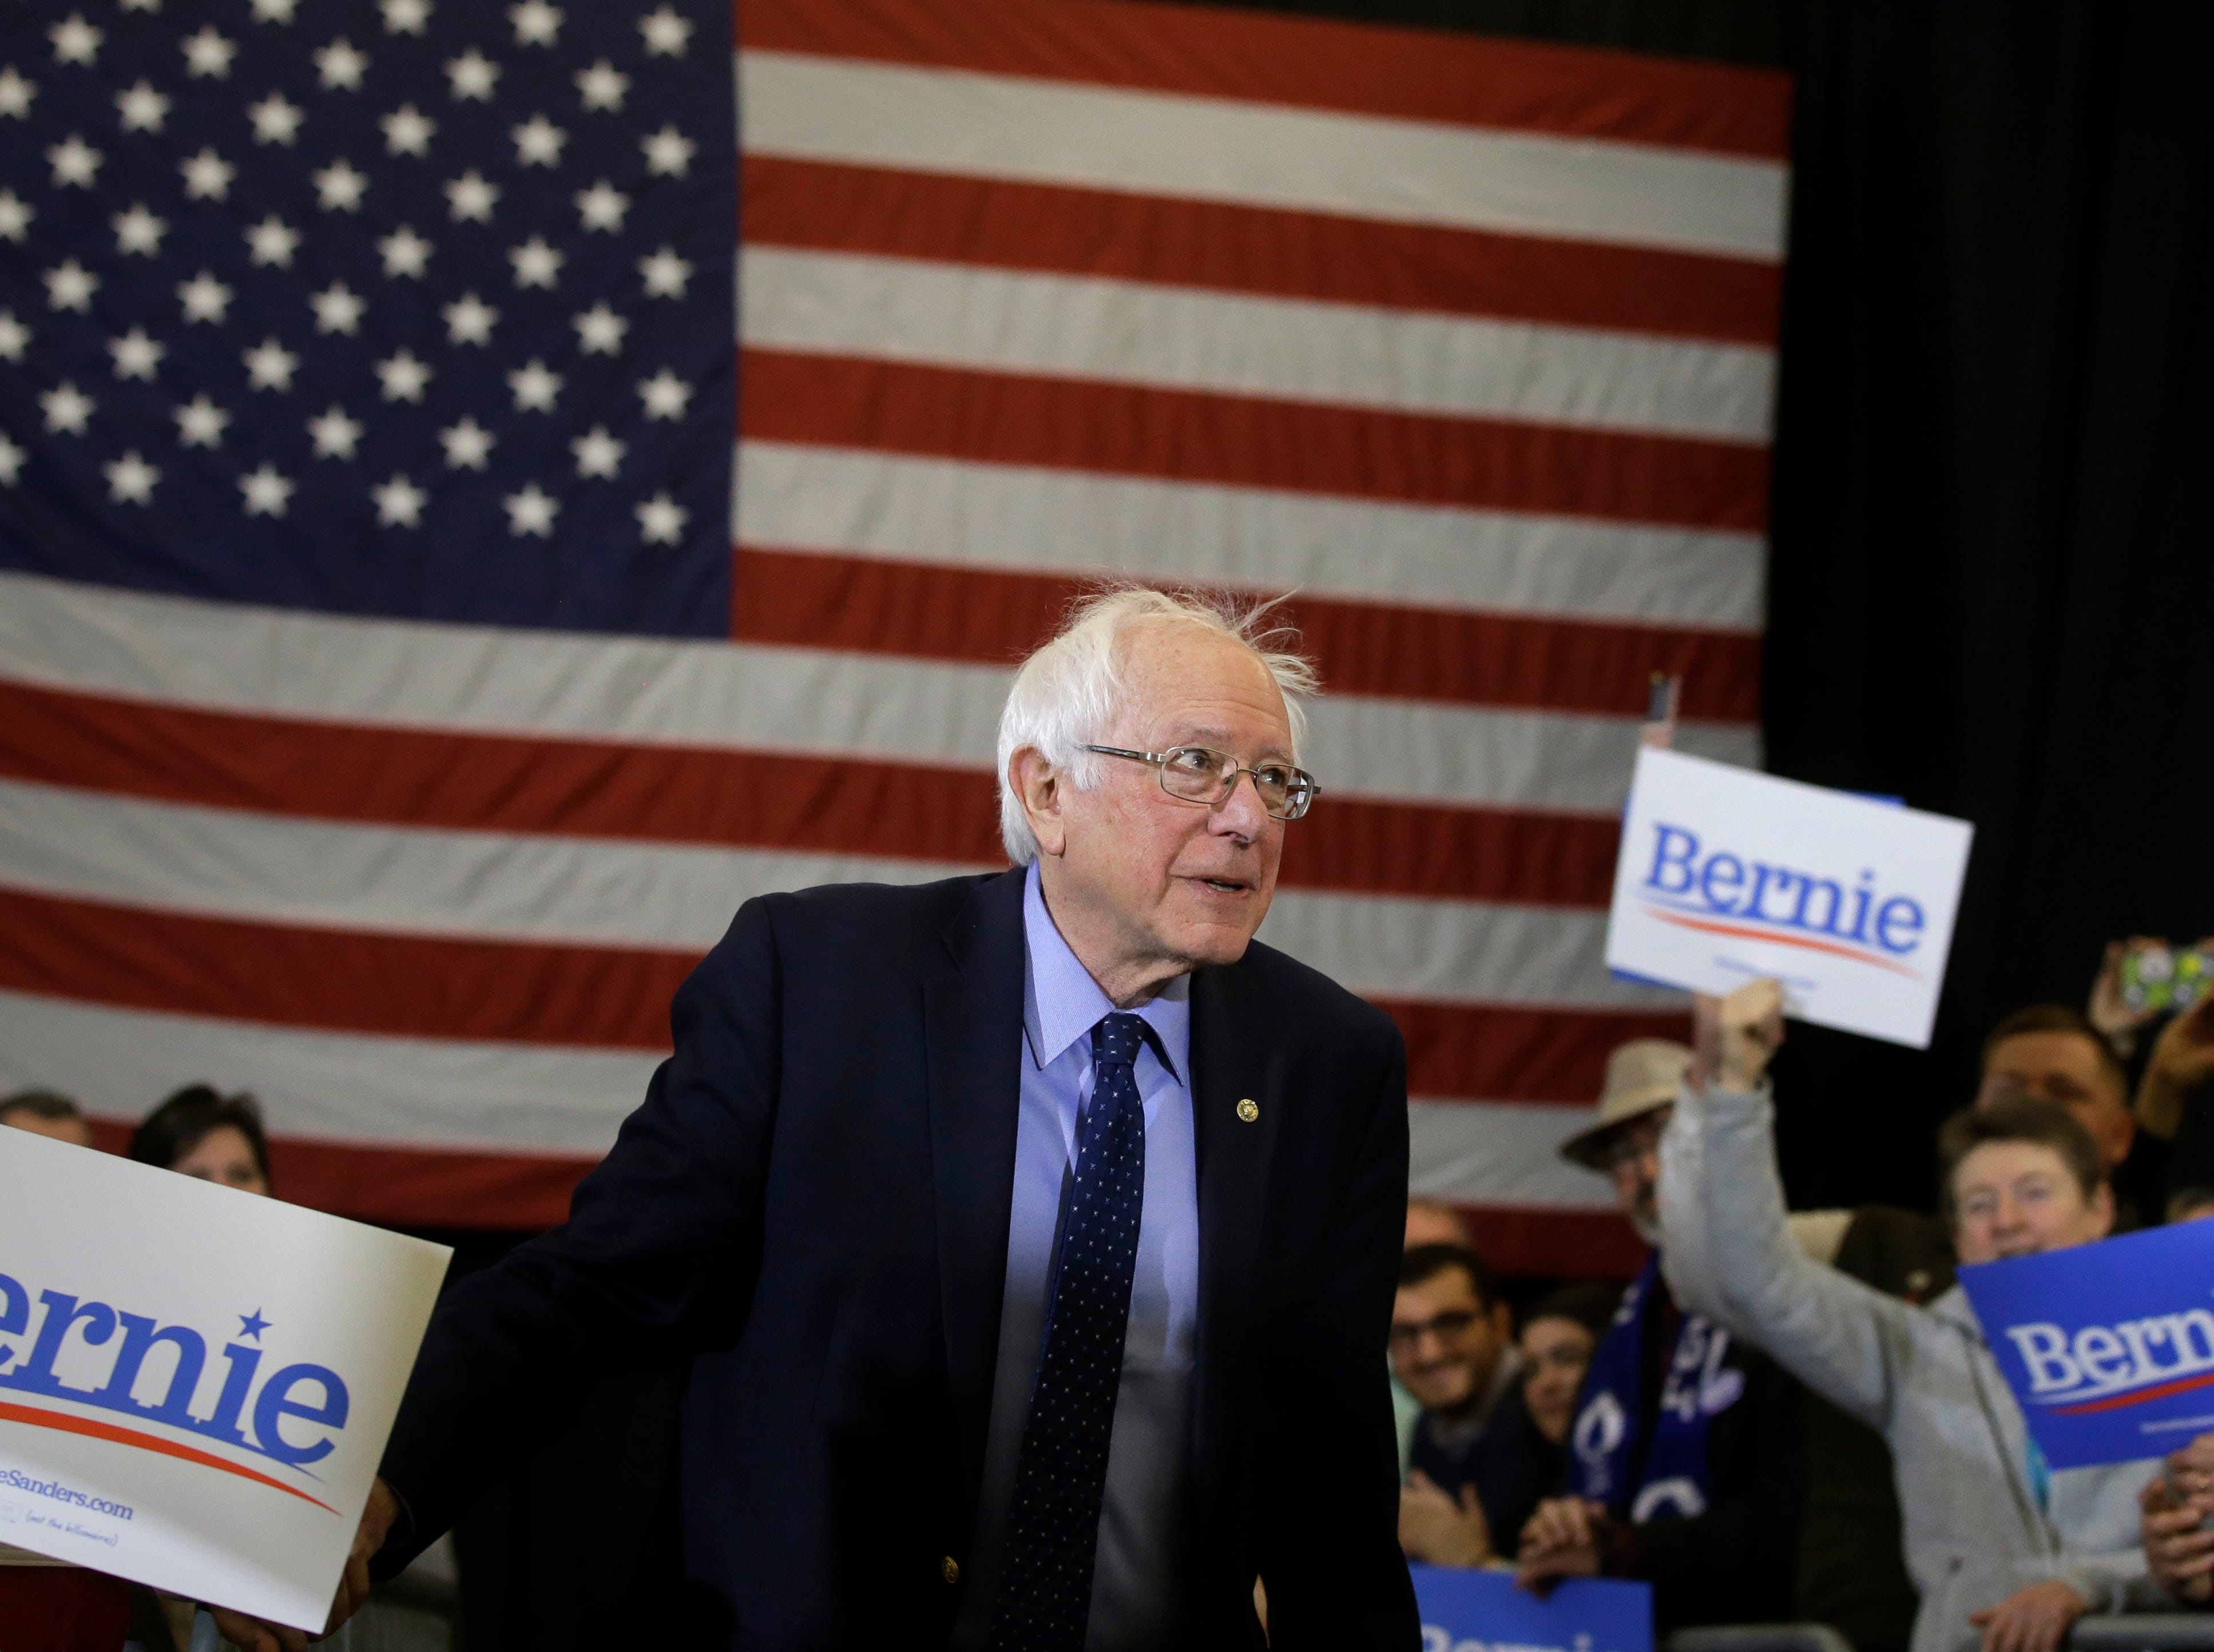 2020 Democratic presidential candidate Sen. Bernie Sanders approaches a podium during a campaign stop, Sunday, March 10, 2019, in Concord, N.H.